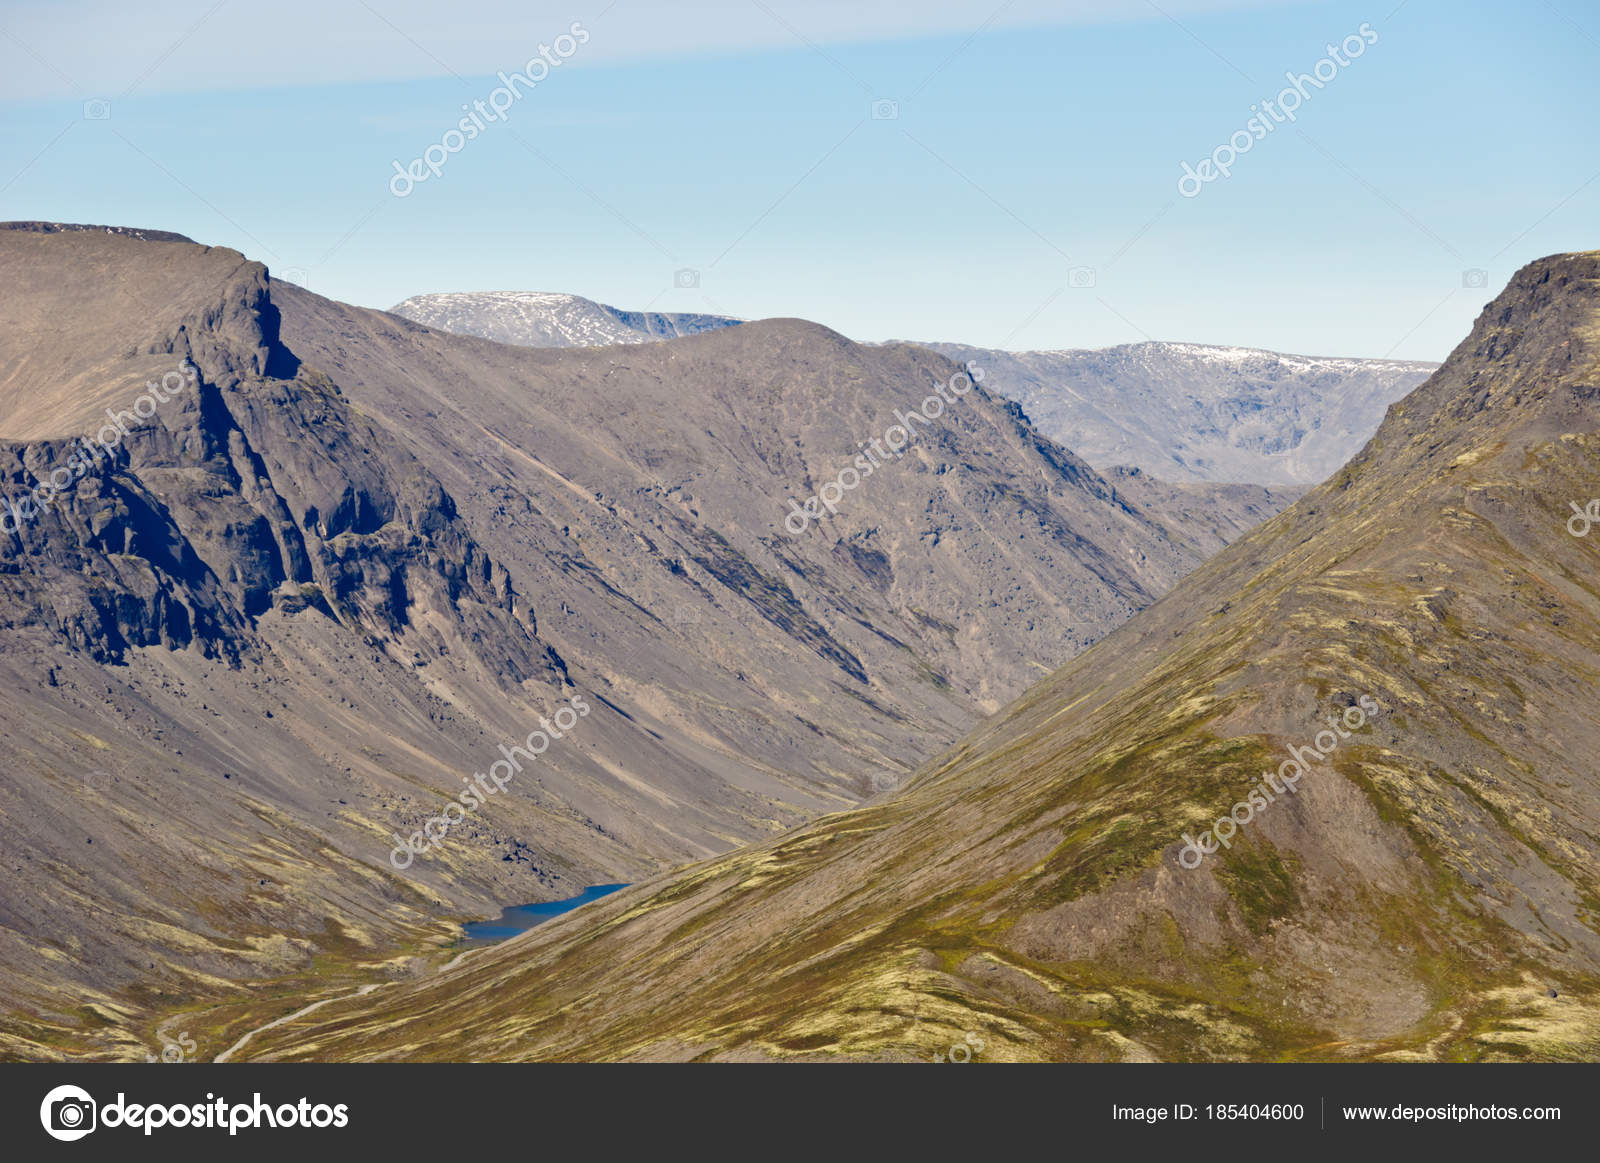 On which peninsula are the Khibiny mountains